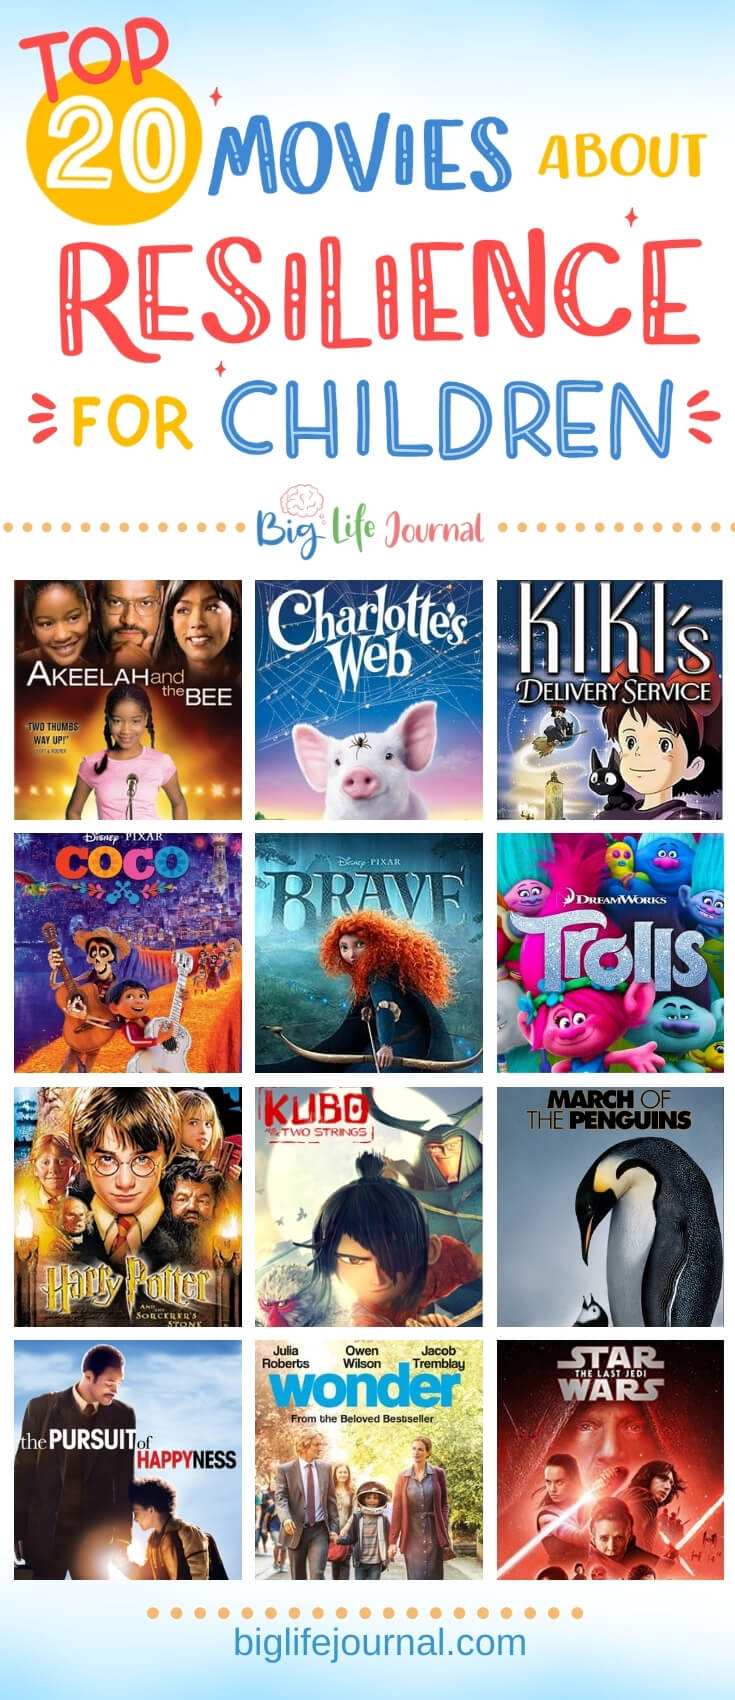 Top 20 Movies About Resilience for Children